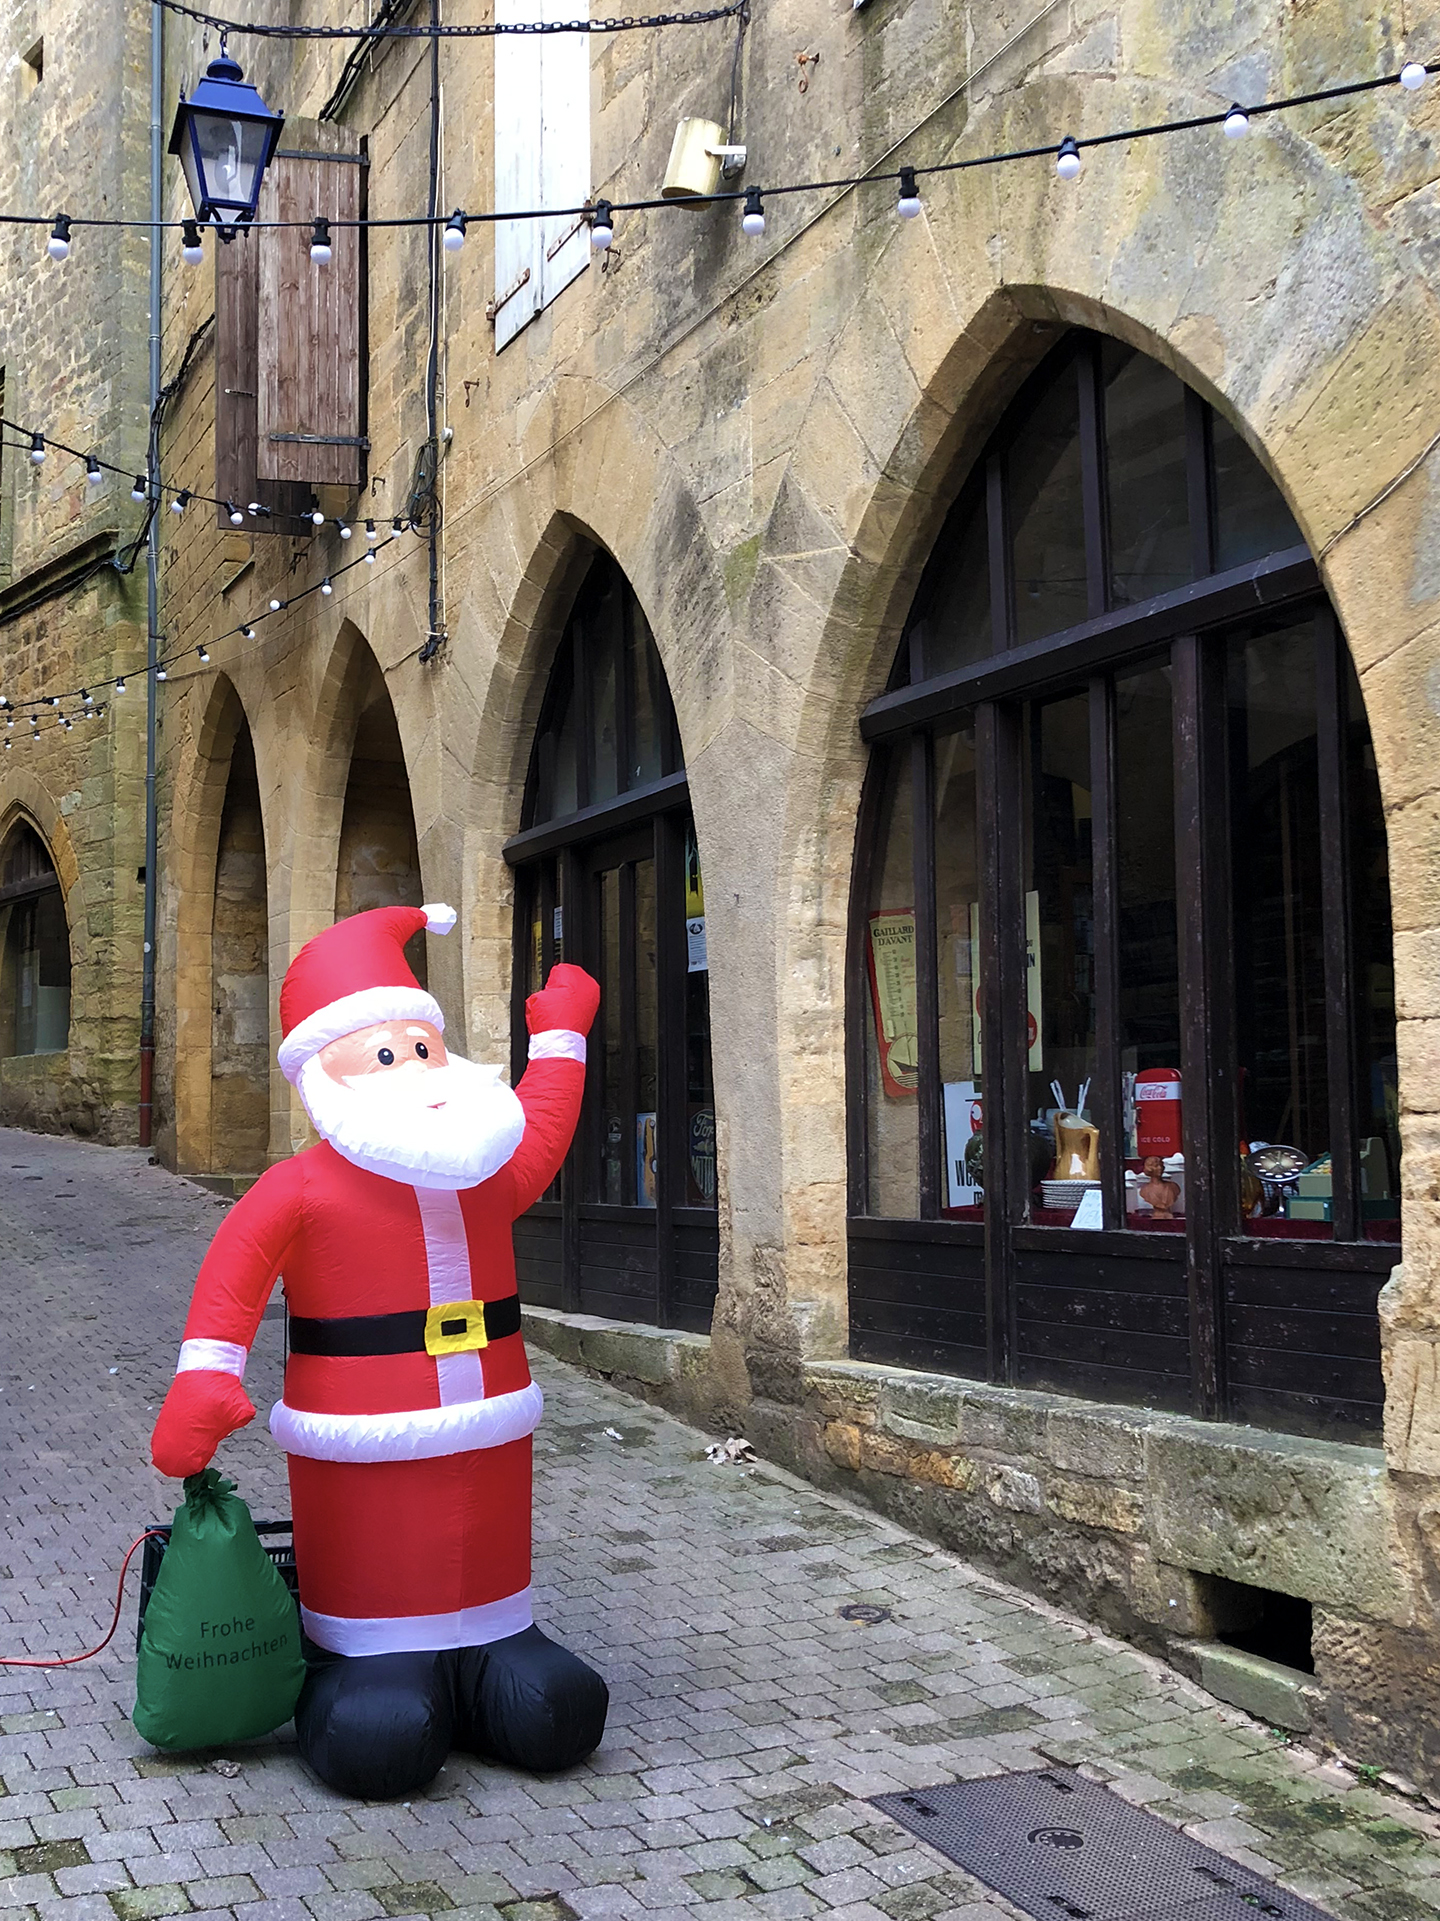 Ho, Ho, Ho! Santa checks out our medieval streets.